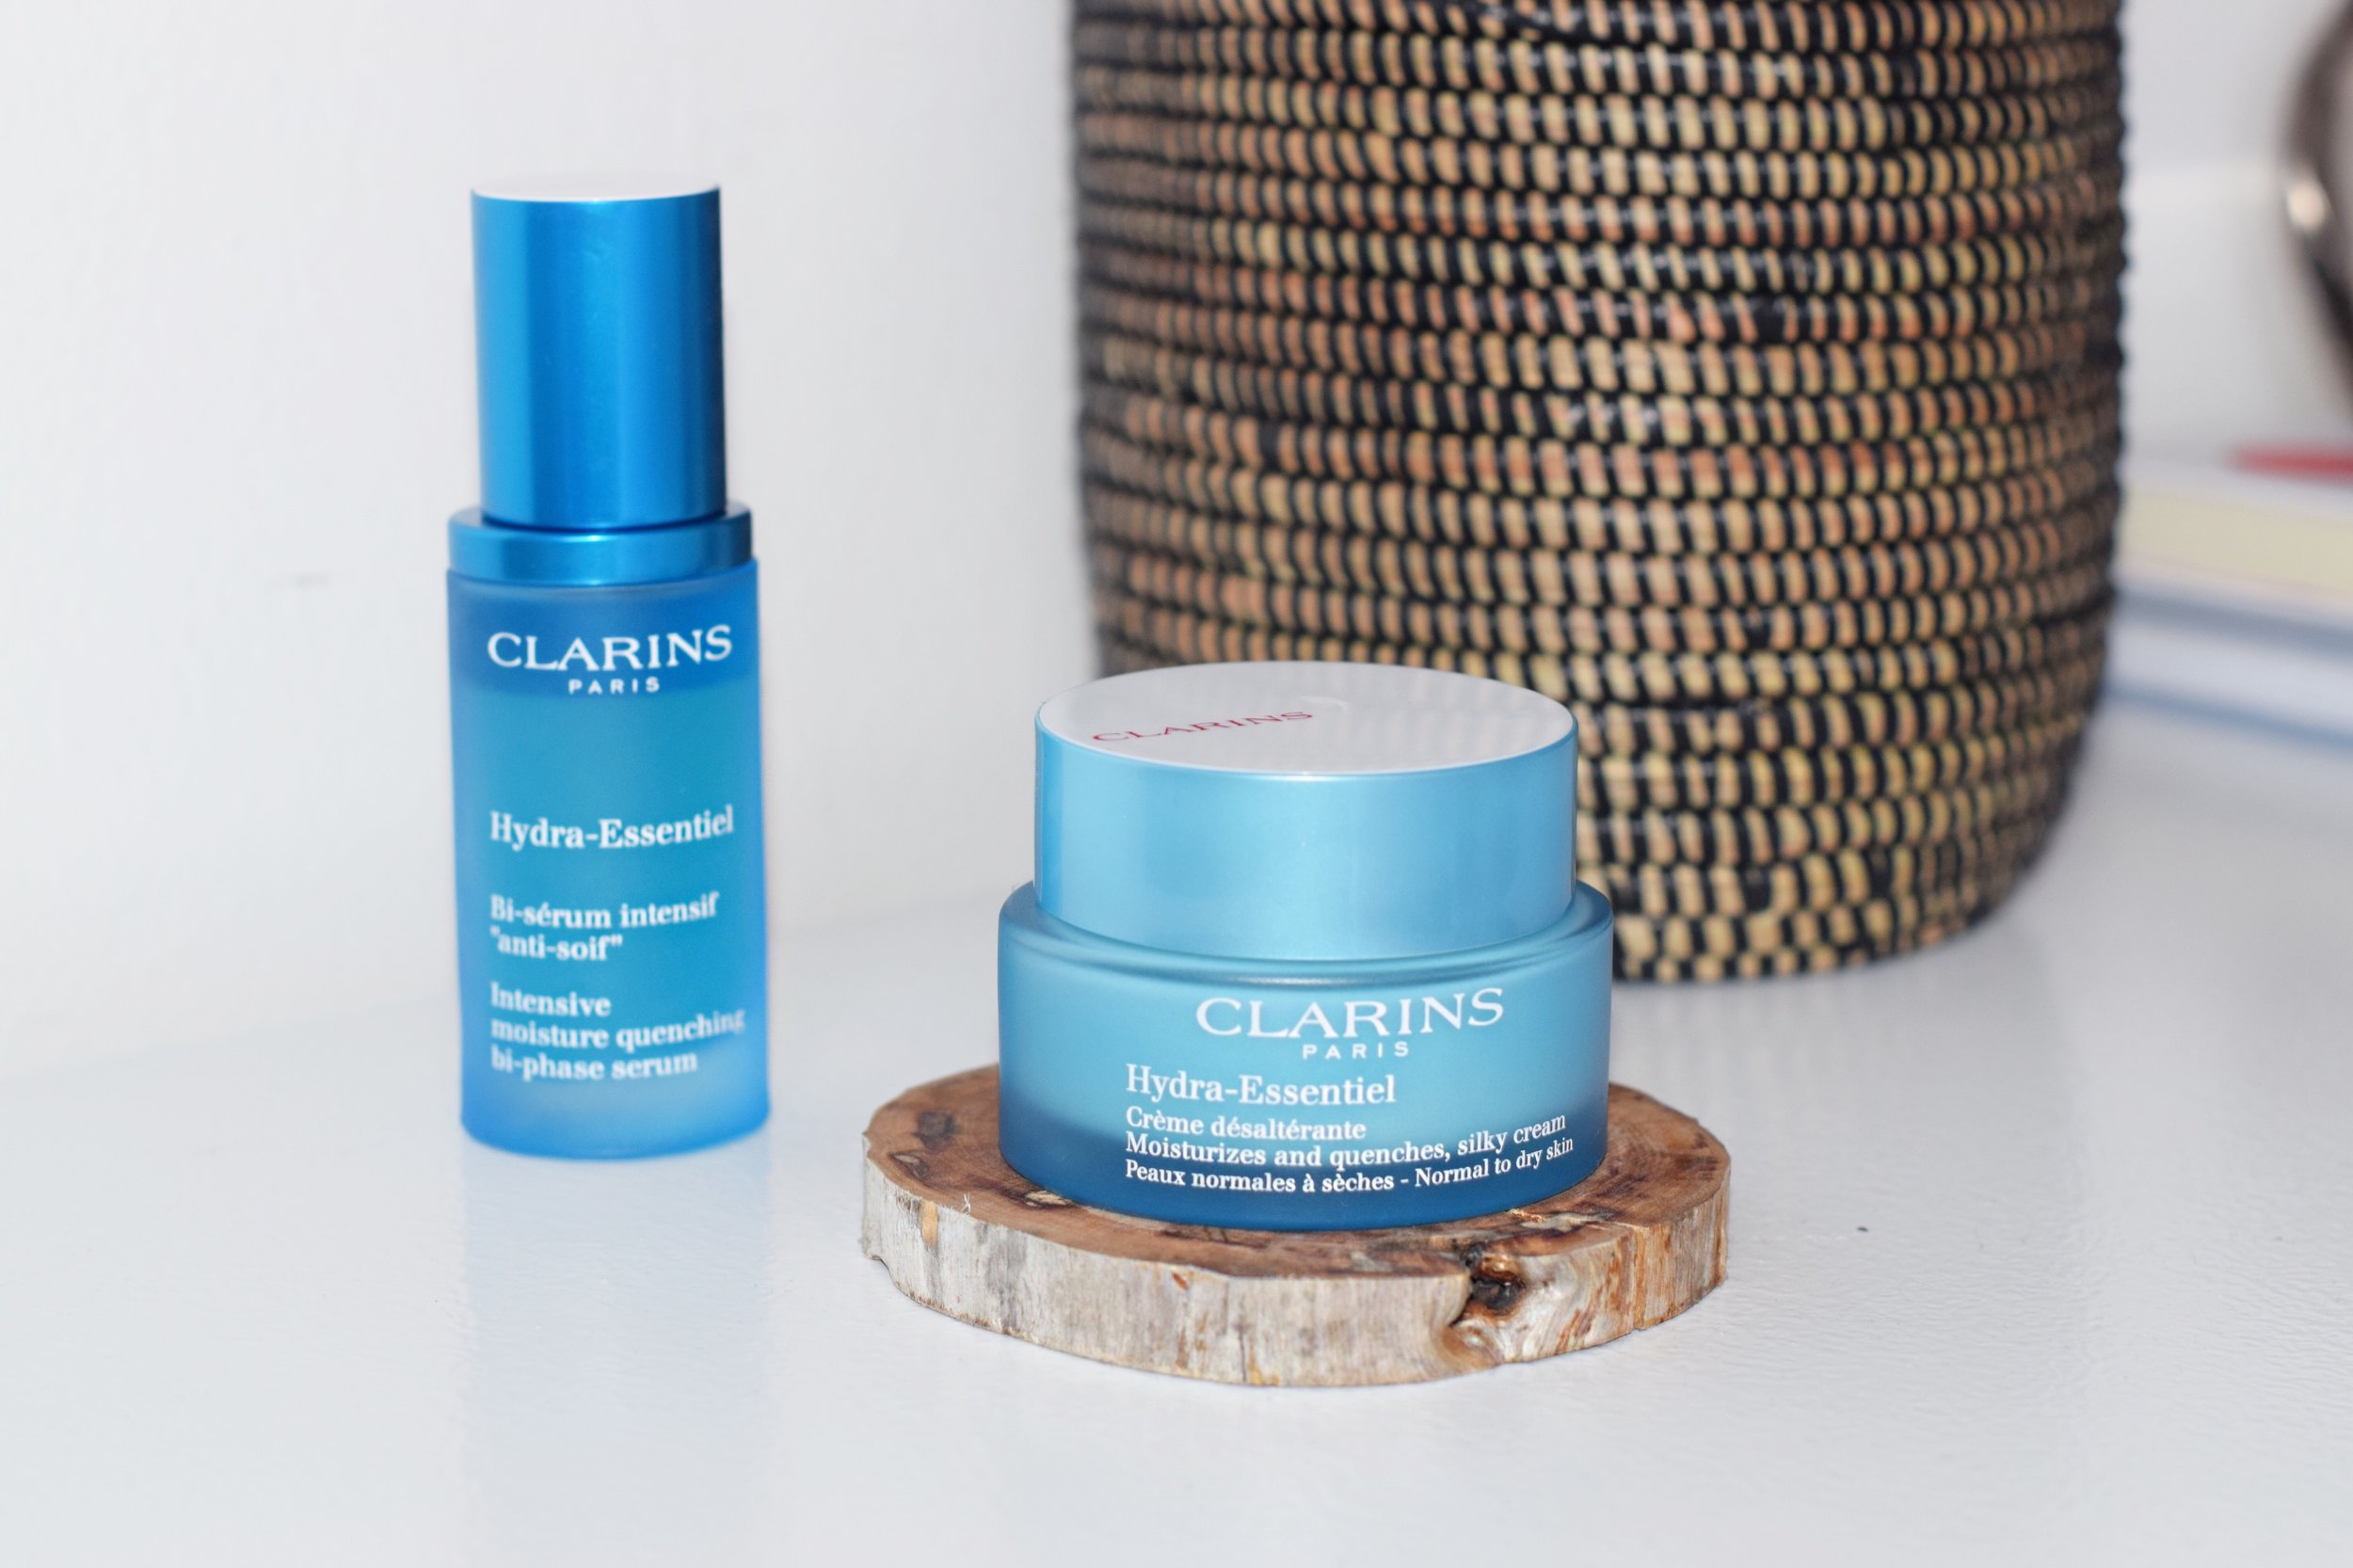 Clarins Hydra-Essentiel Bi-phase serum and moisturizer Louboutins & Love Esther Santer NYC Street Style Blogger Beauty Product Review Skin Routine Blue Packaging Shop Buy Lotion Girl Women Sephora Macys Lord & Taylor Skincare.JPG